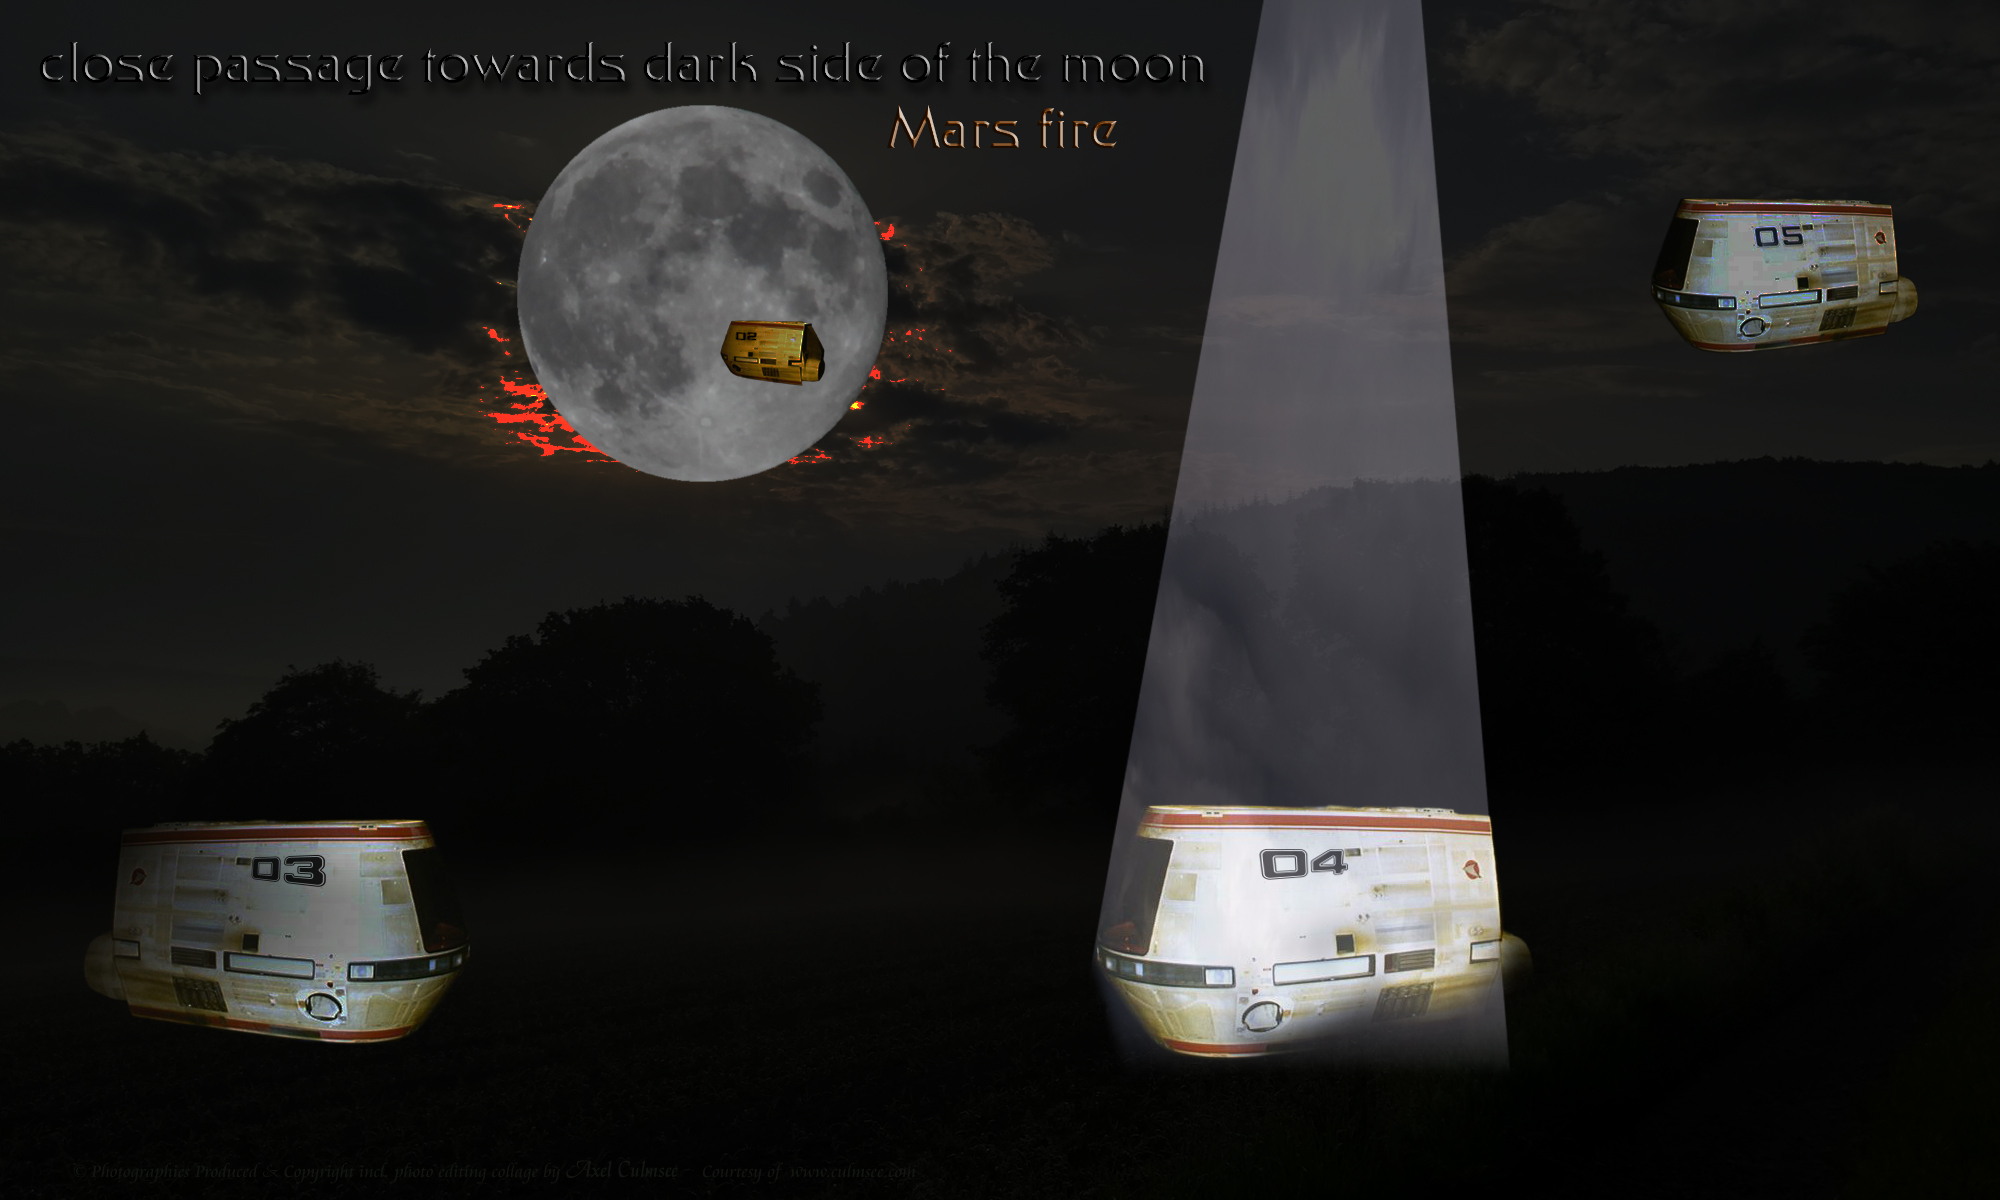 Travel Pods close passage towards dark side of the moon Mars fire